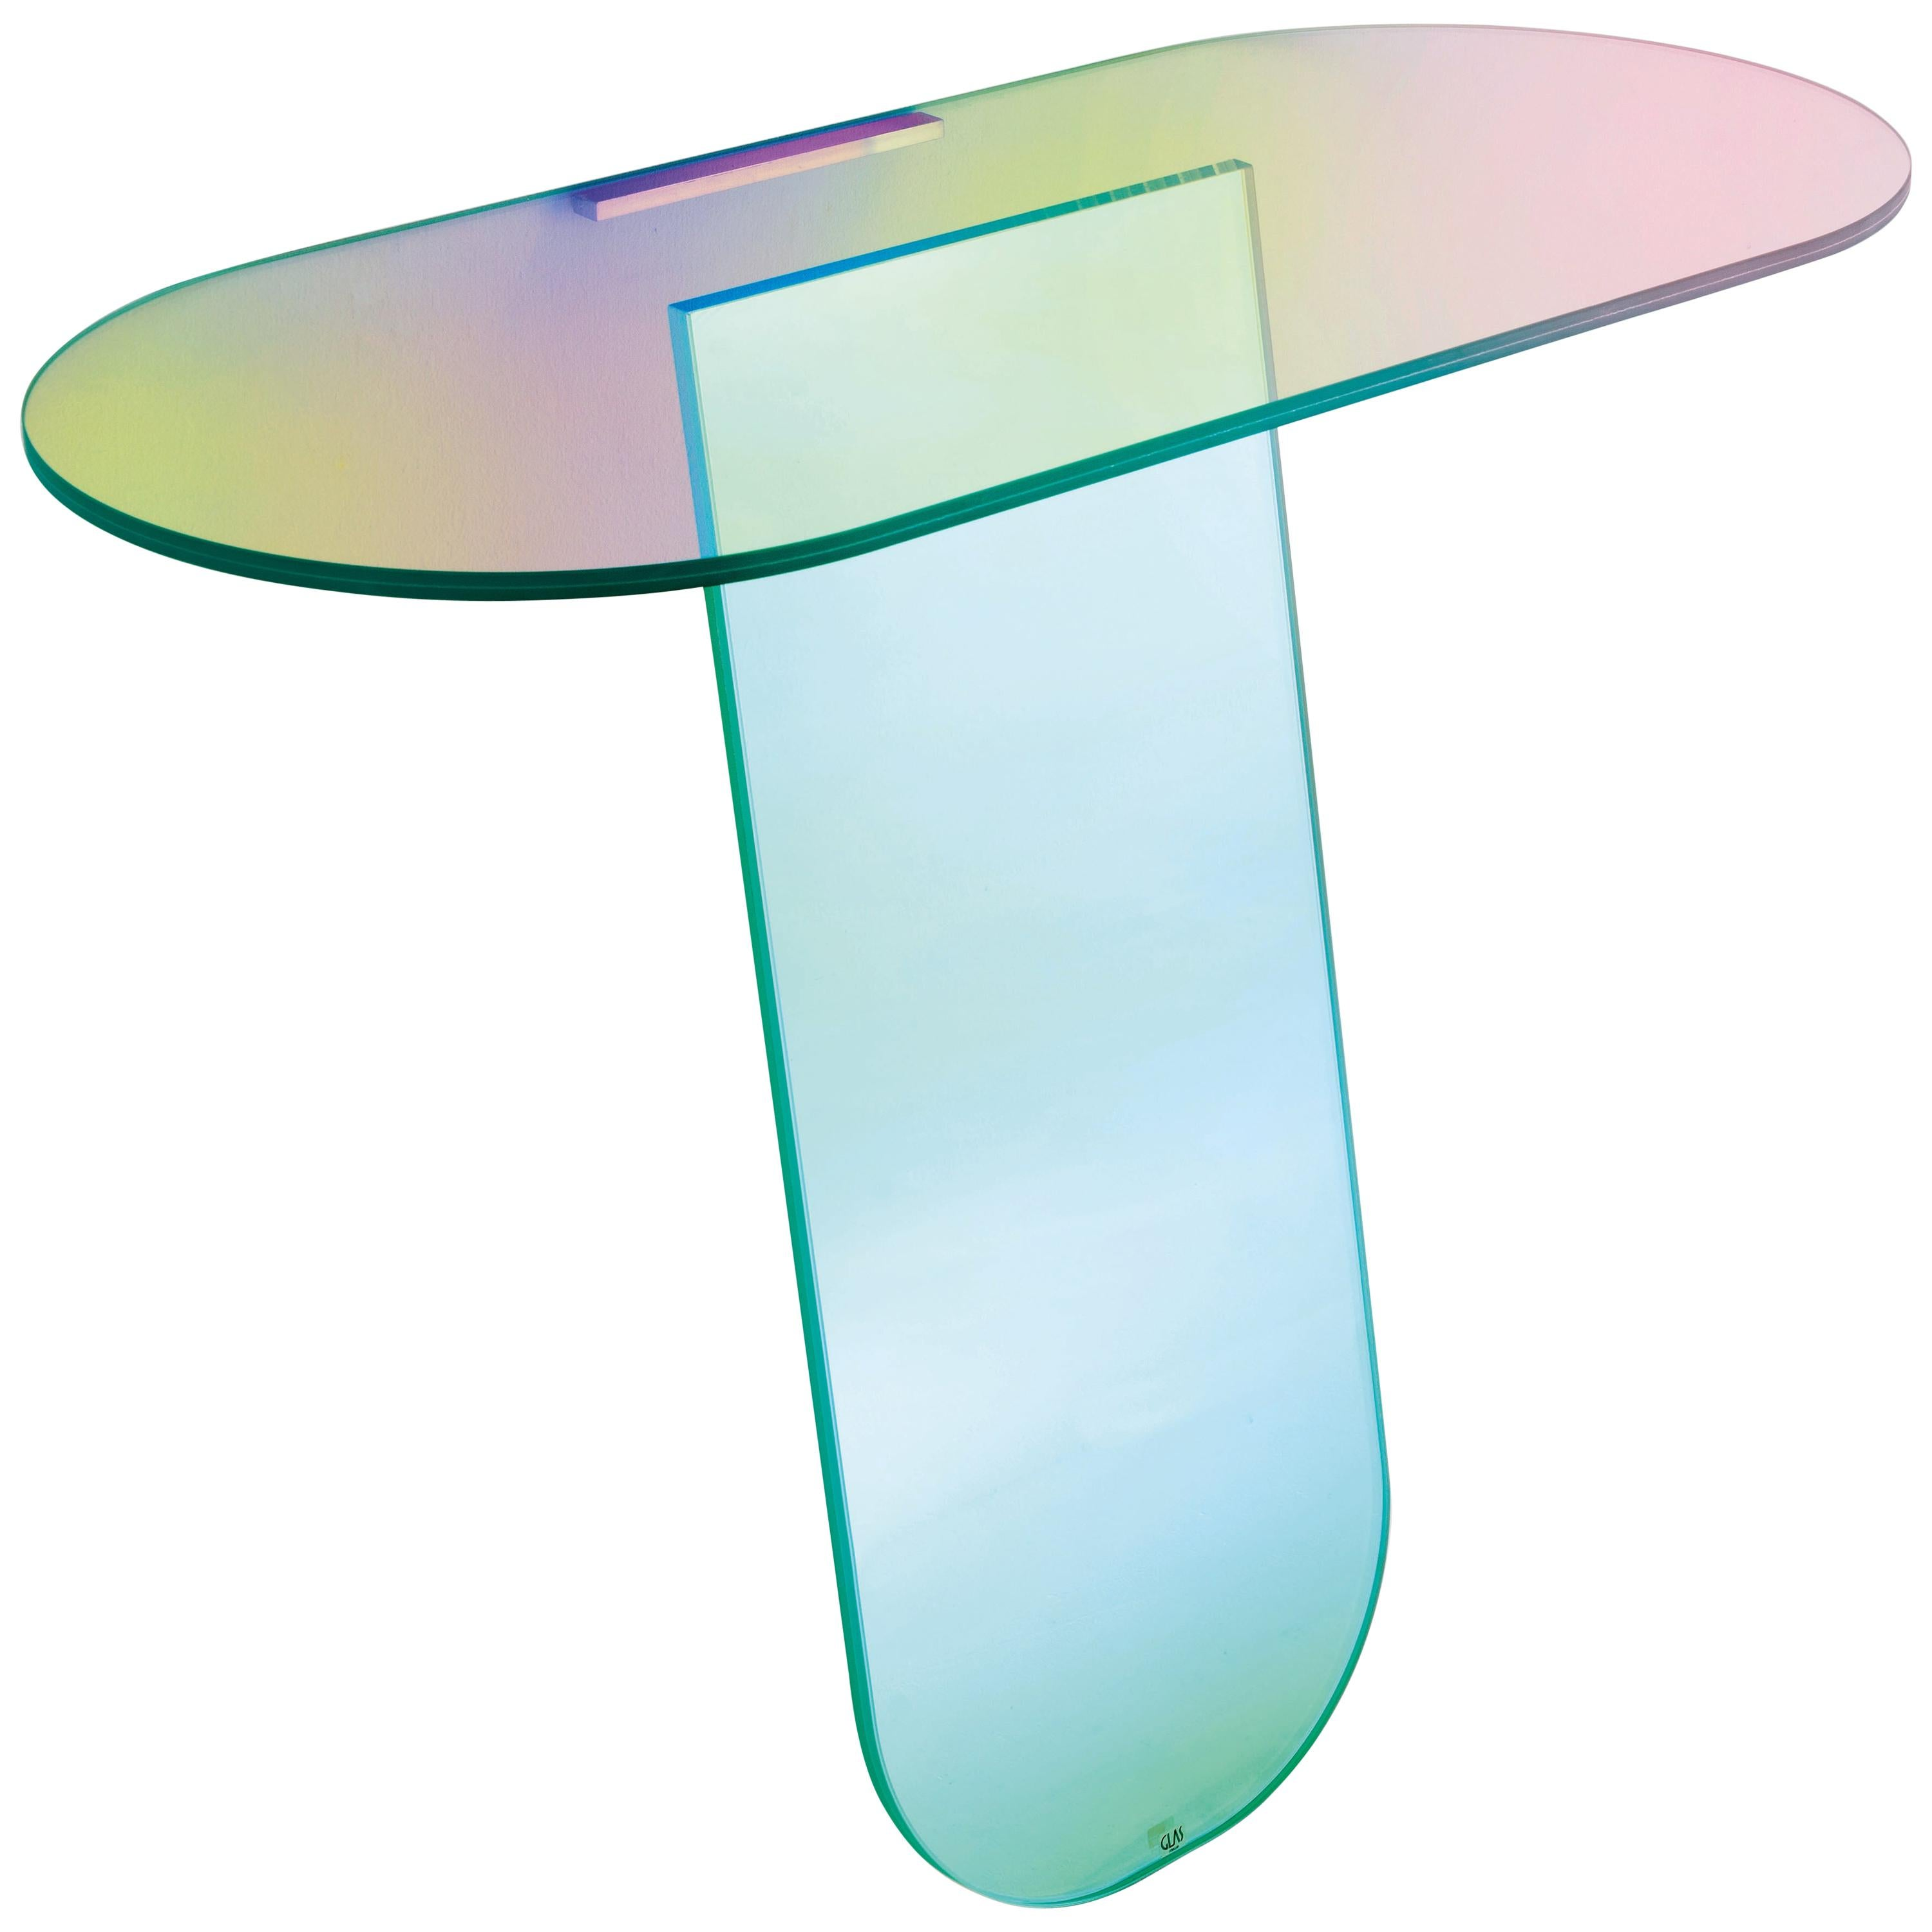 Shimmer Console Table, by Patricia Urquiola for Glas Italia